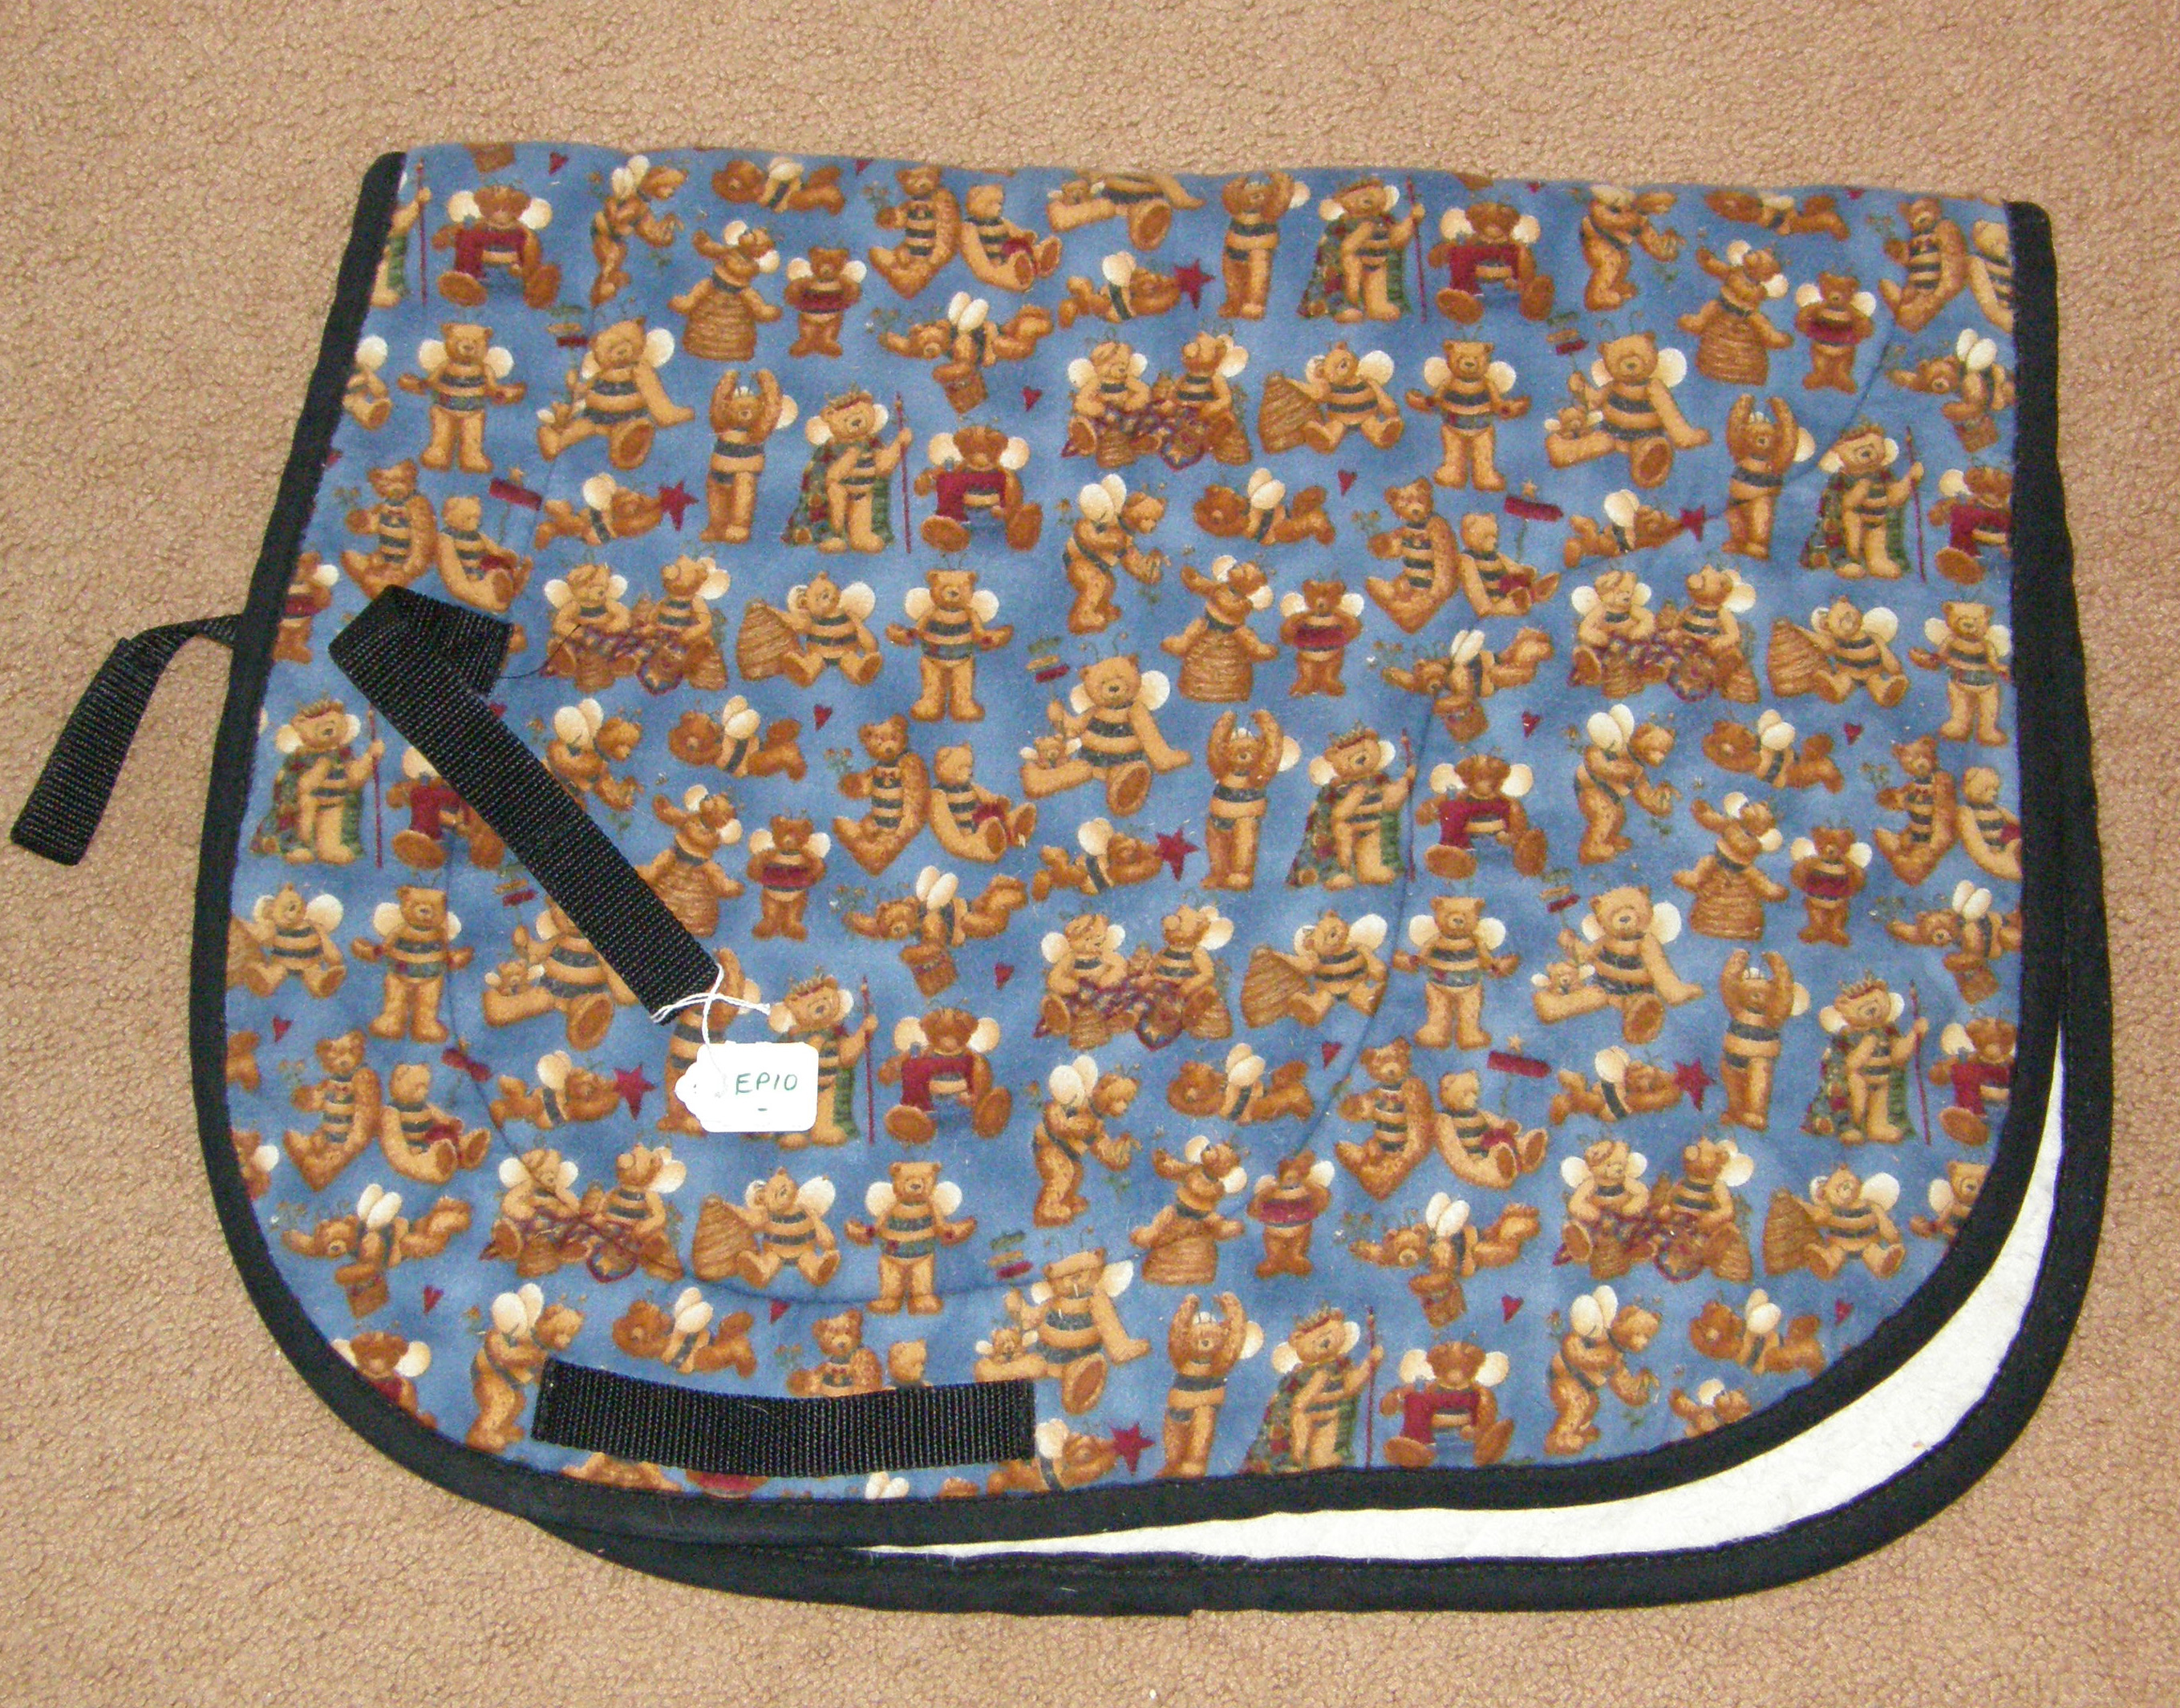 Brushed Cotton Event Pad English Saddle Pad Honey Bees & Bears Print